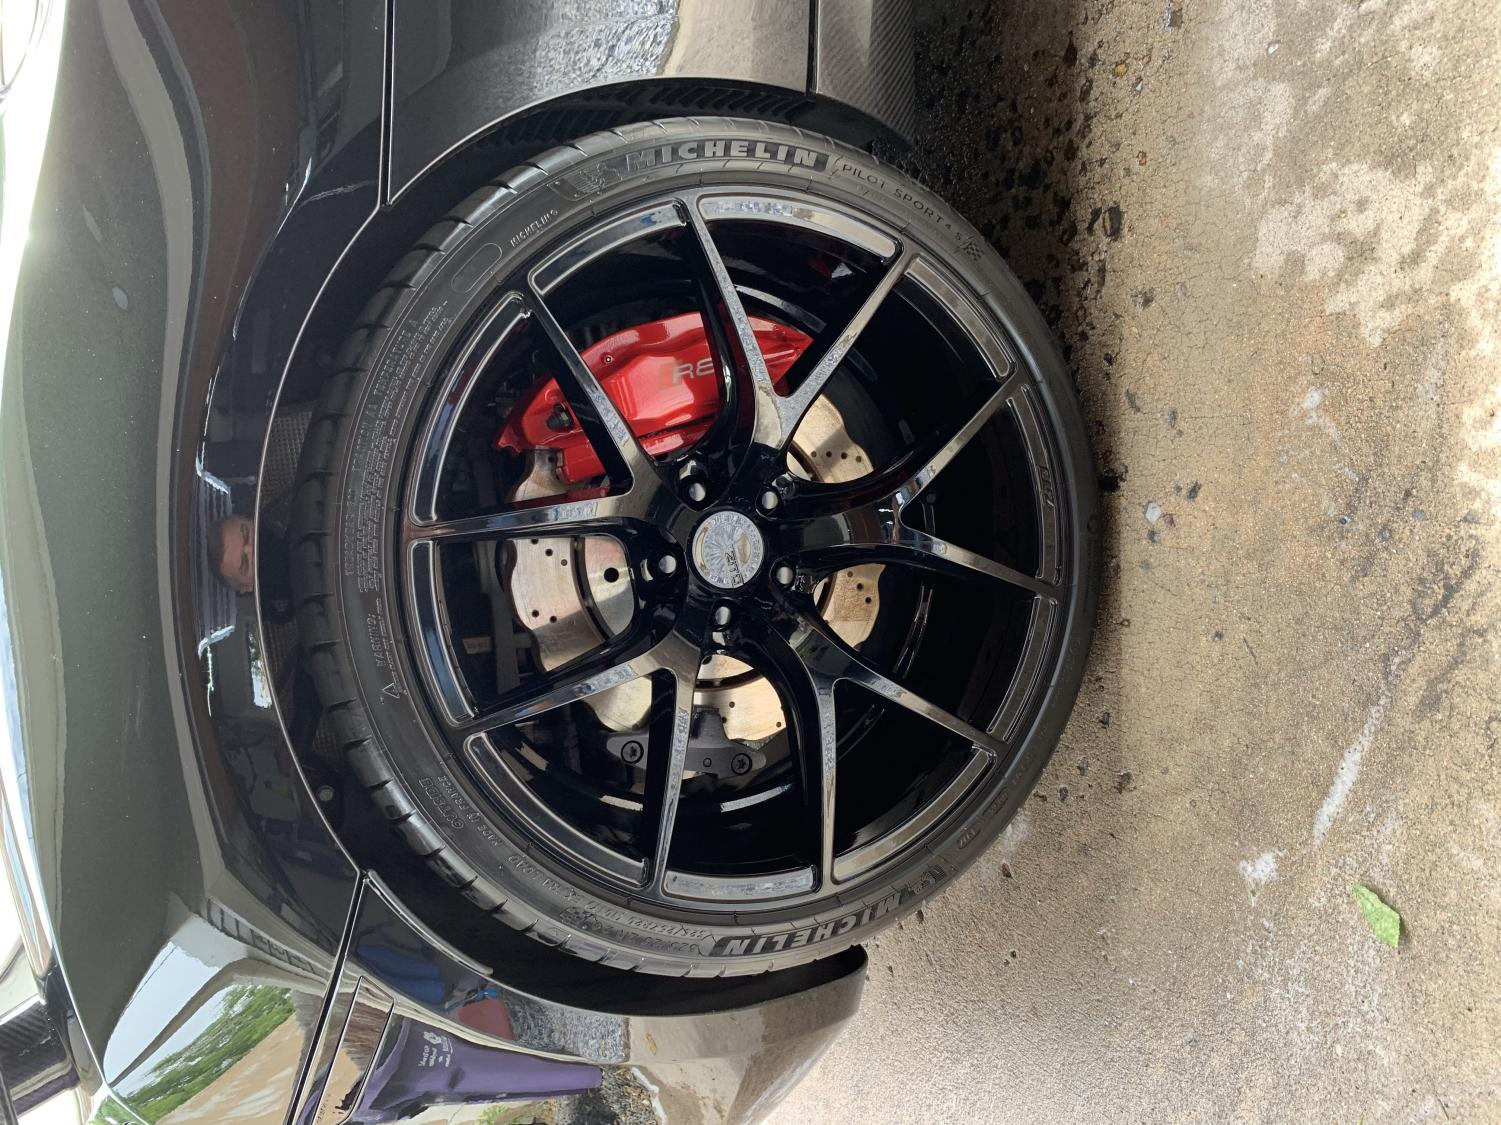 Gen1 with custom wheels - In search of custom lug nuts for front-2019-08-10-11.07.05.jpg